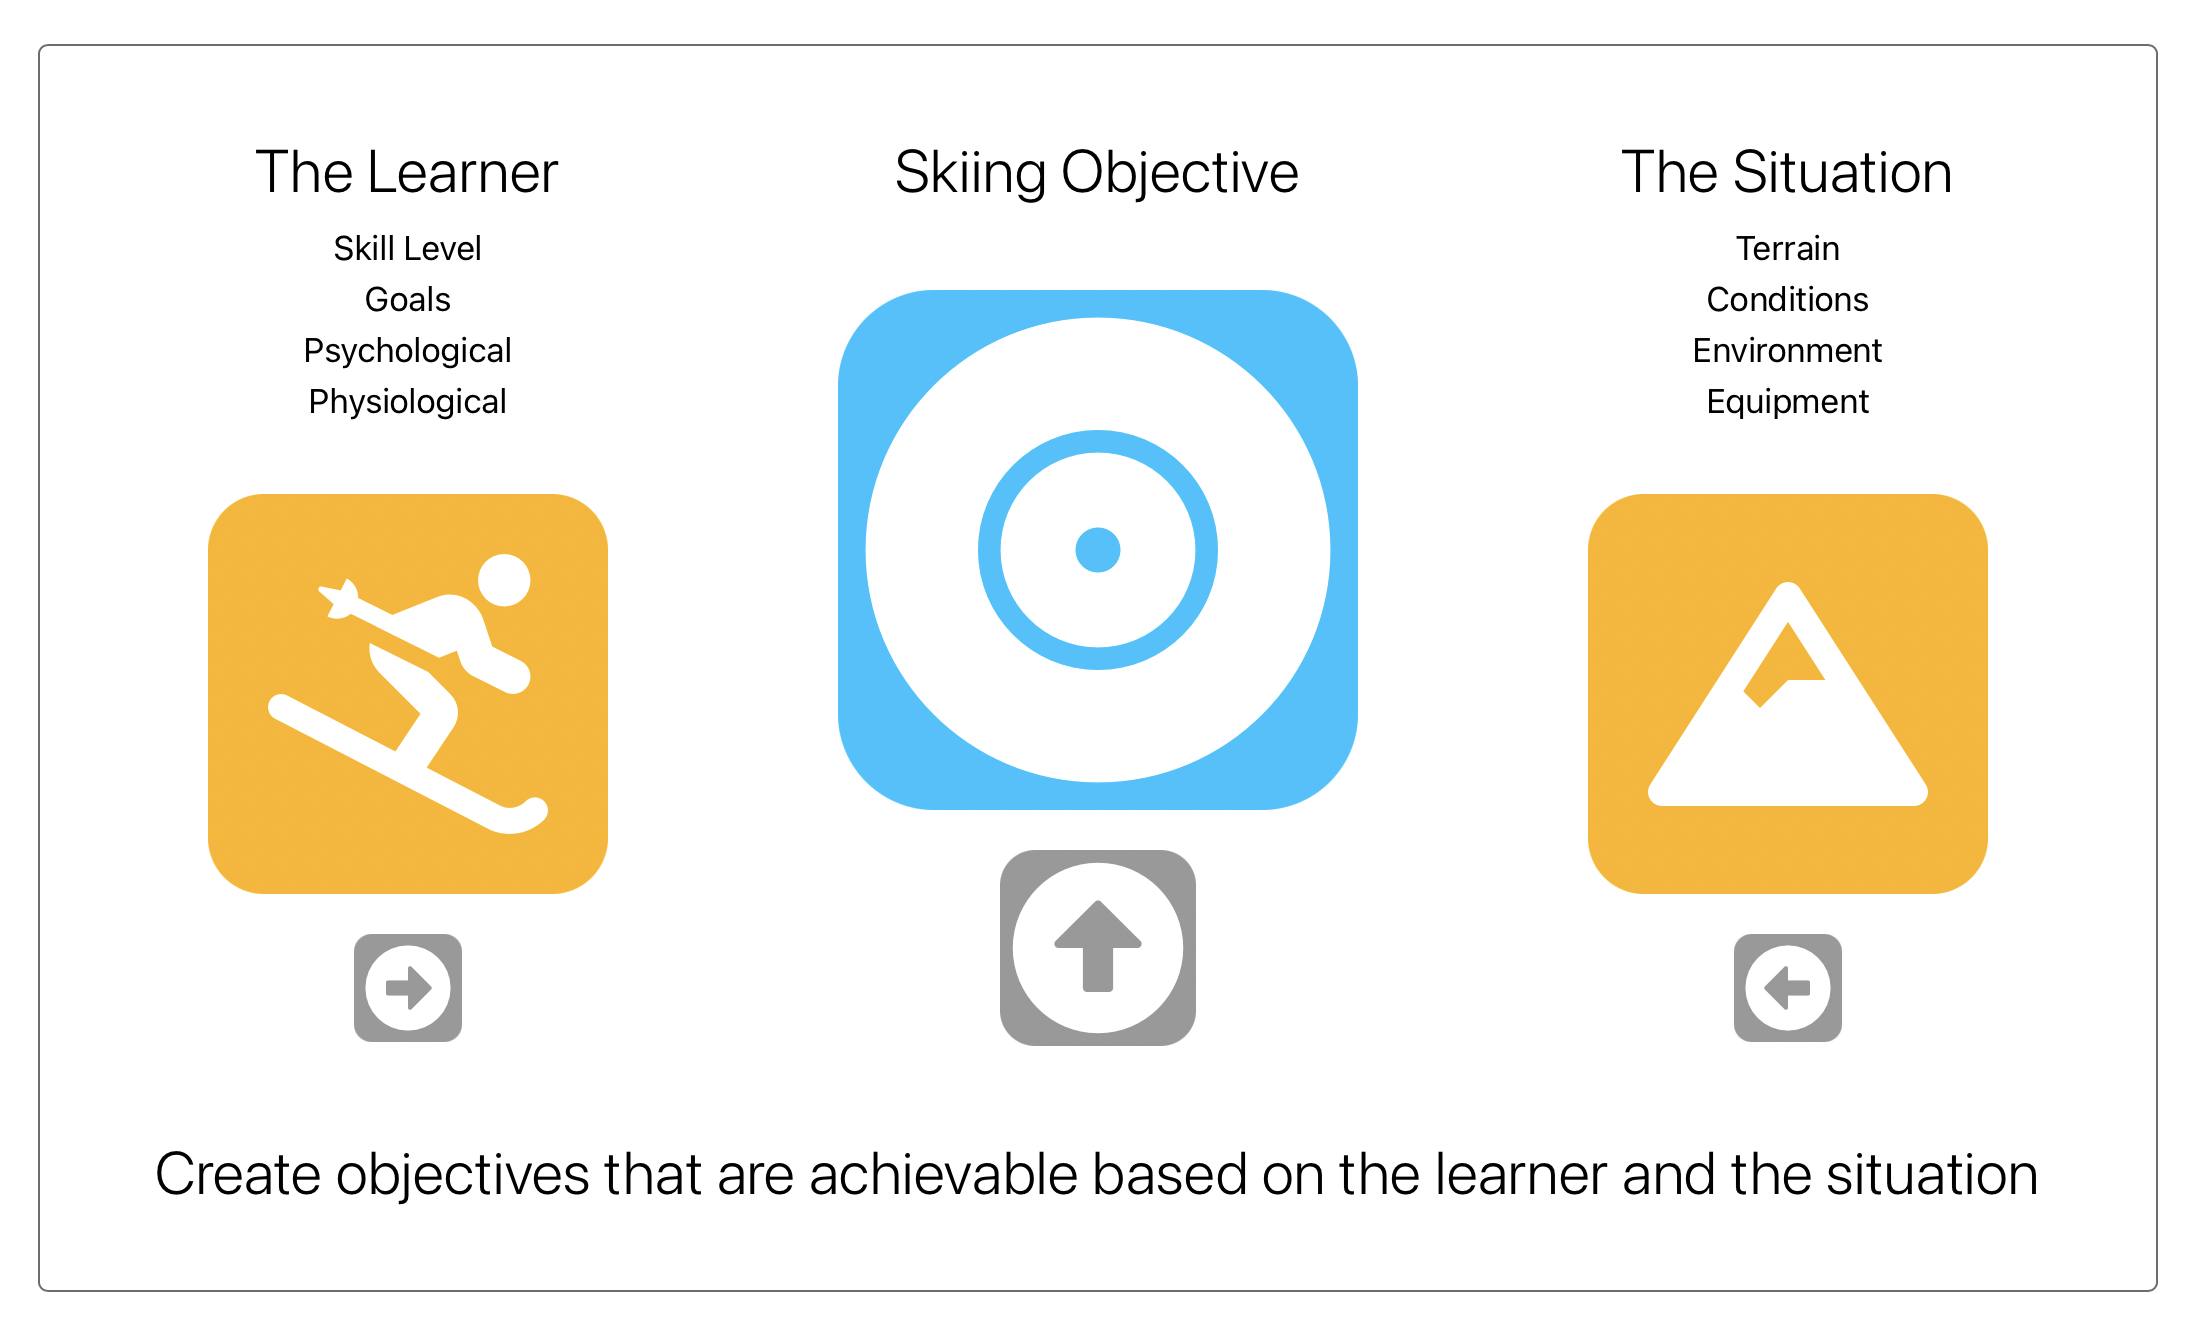 Setting Skiing Objectives